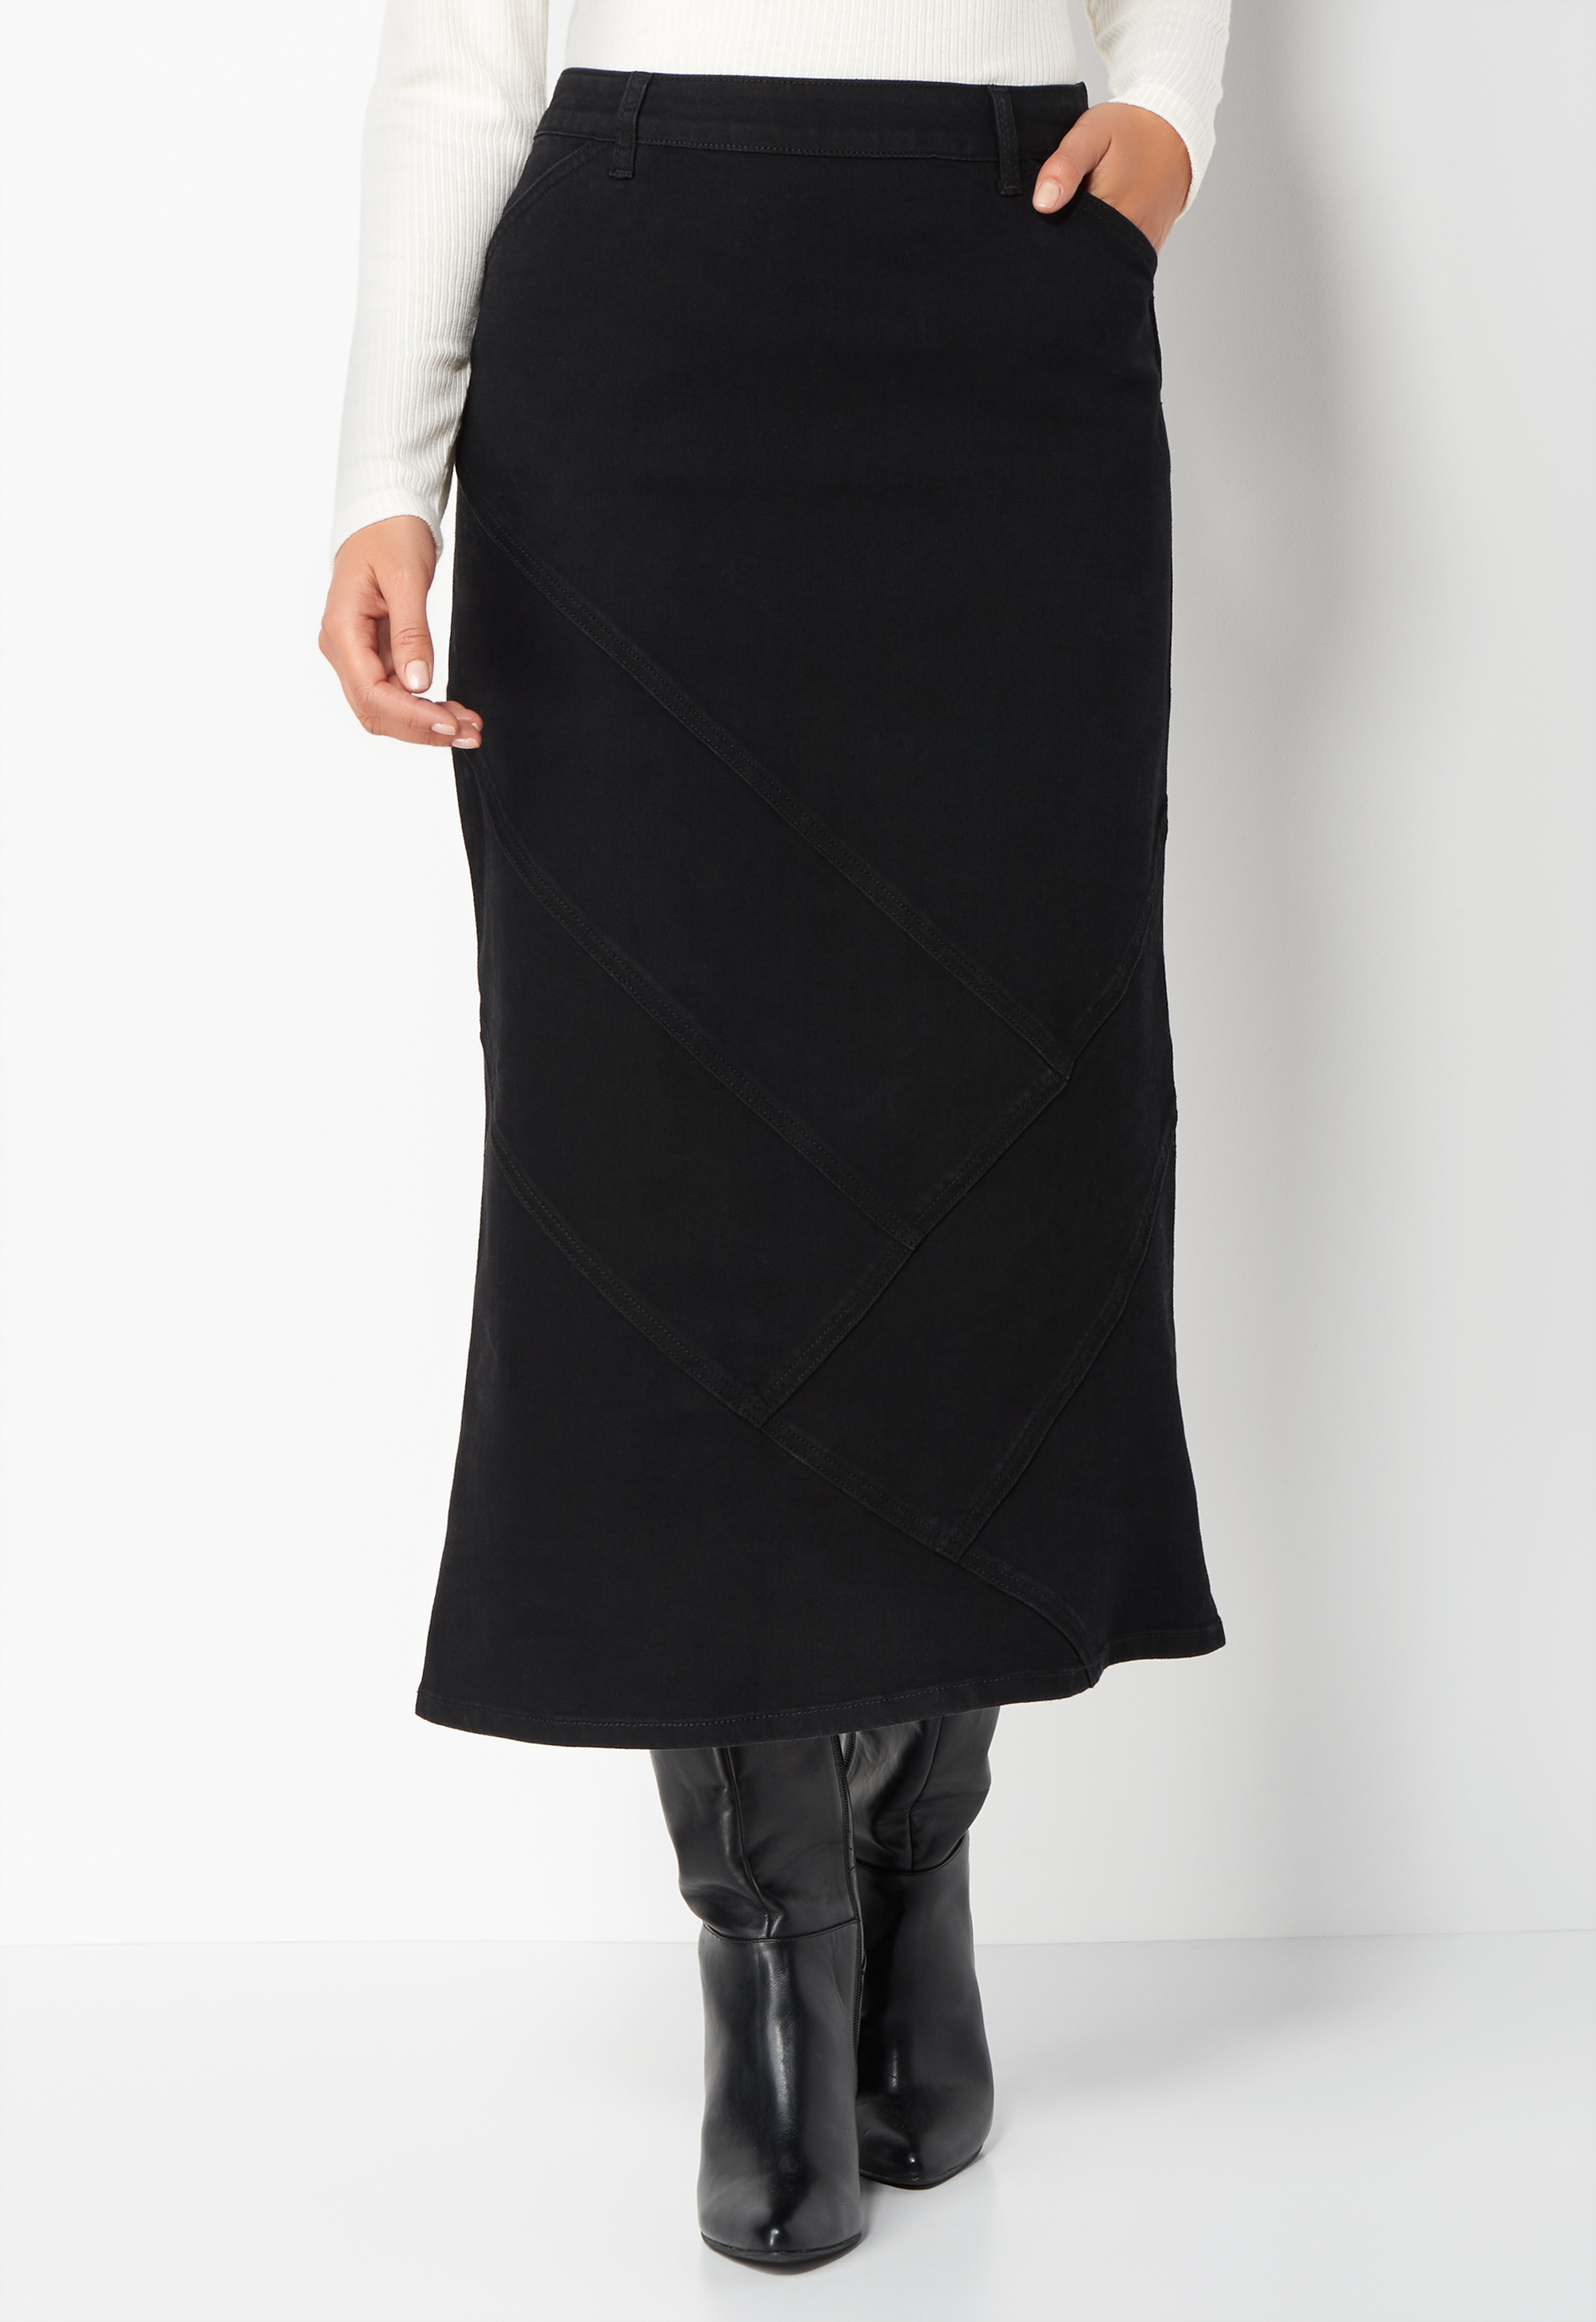 Retro Skirts: Vintage, Pencil, Circle, & Plus Sizes Long Seamed Colored Petite Denim Skirt - Black - Christopher  Banks $44.95 AT vintagedancer.com